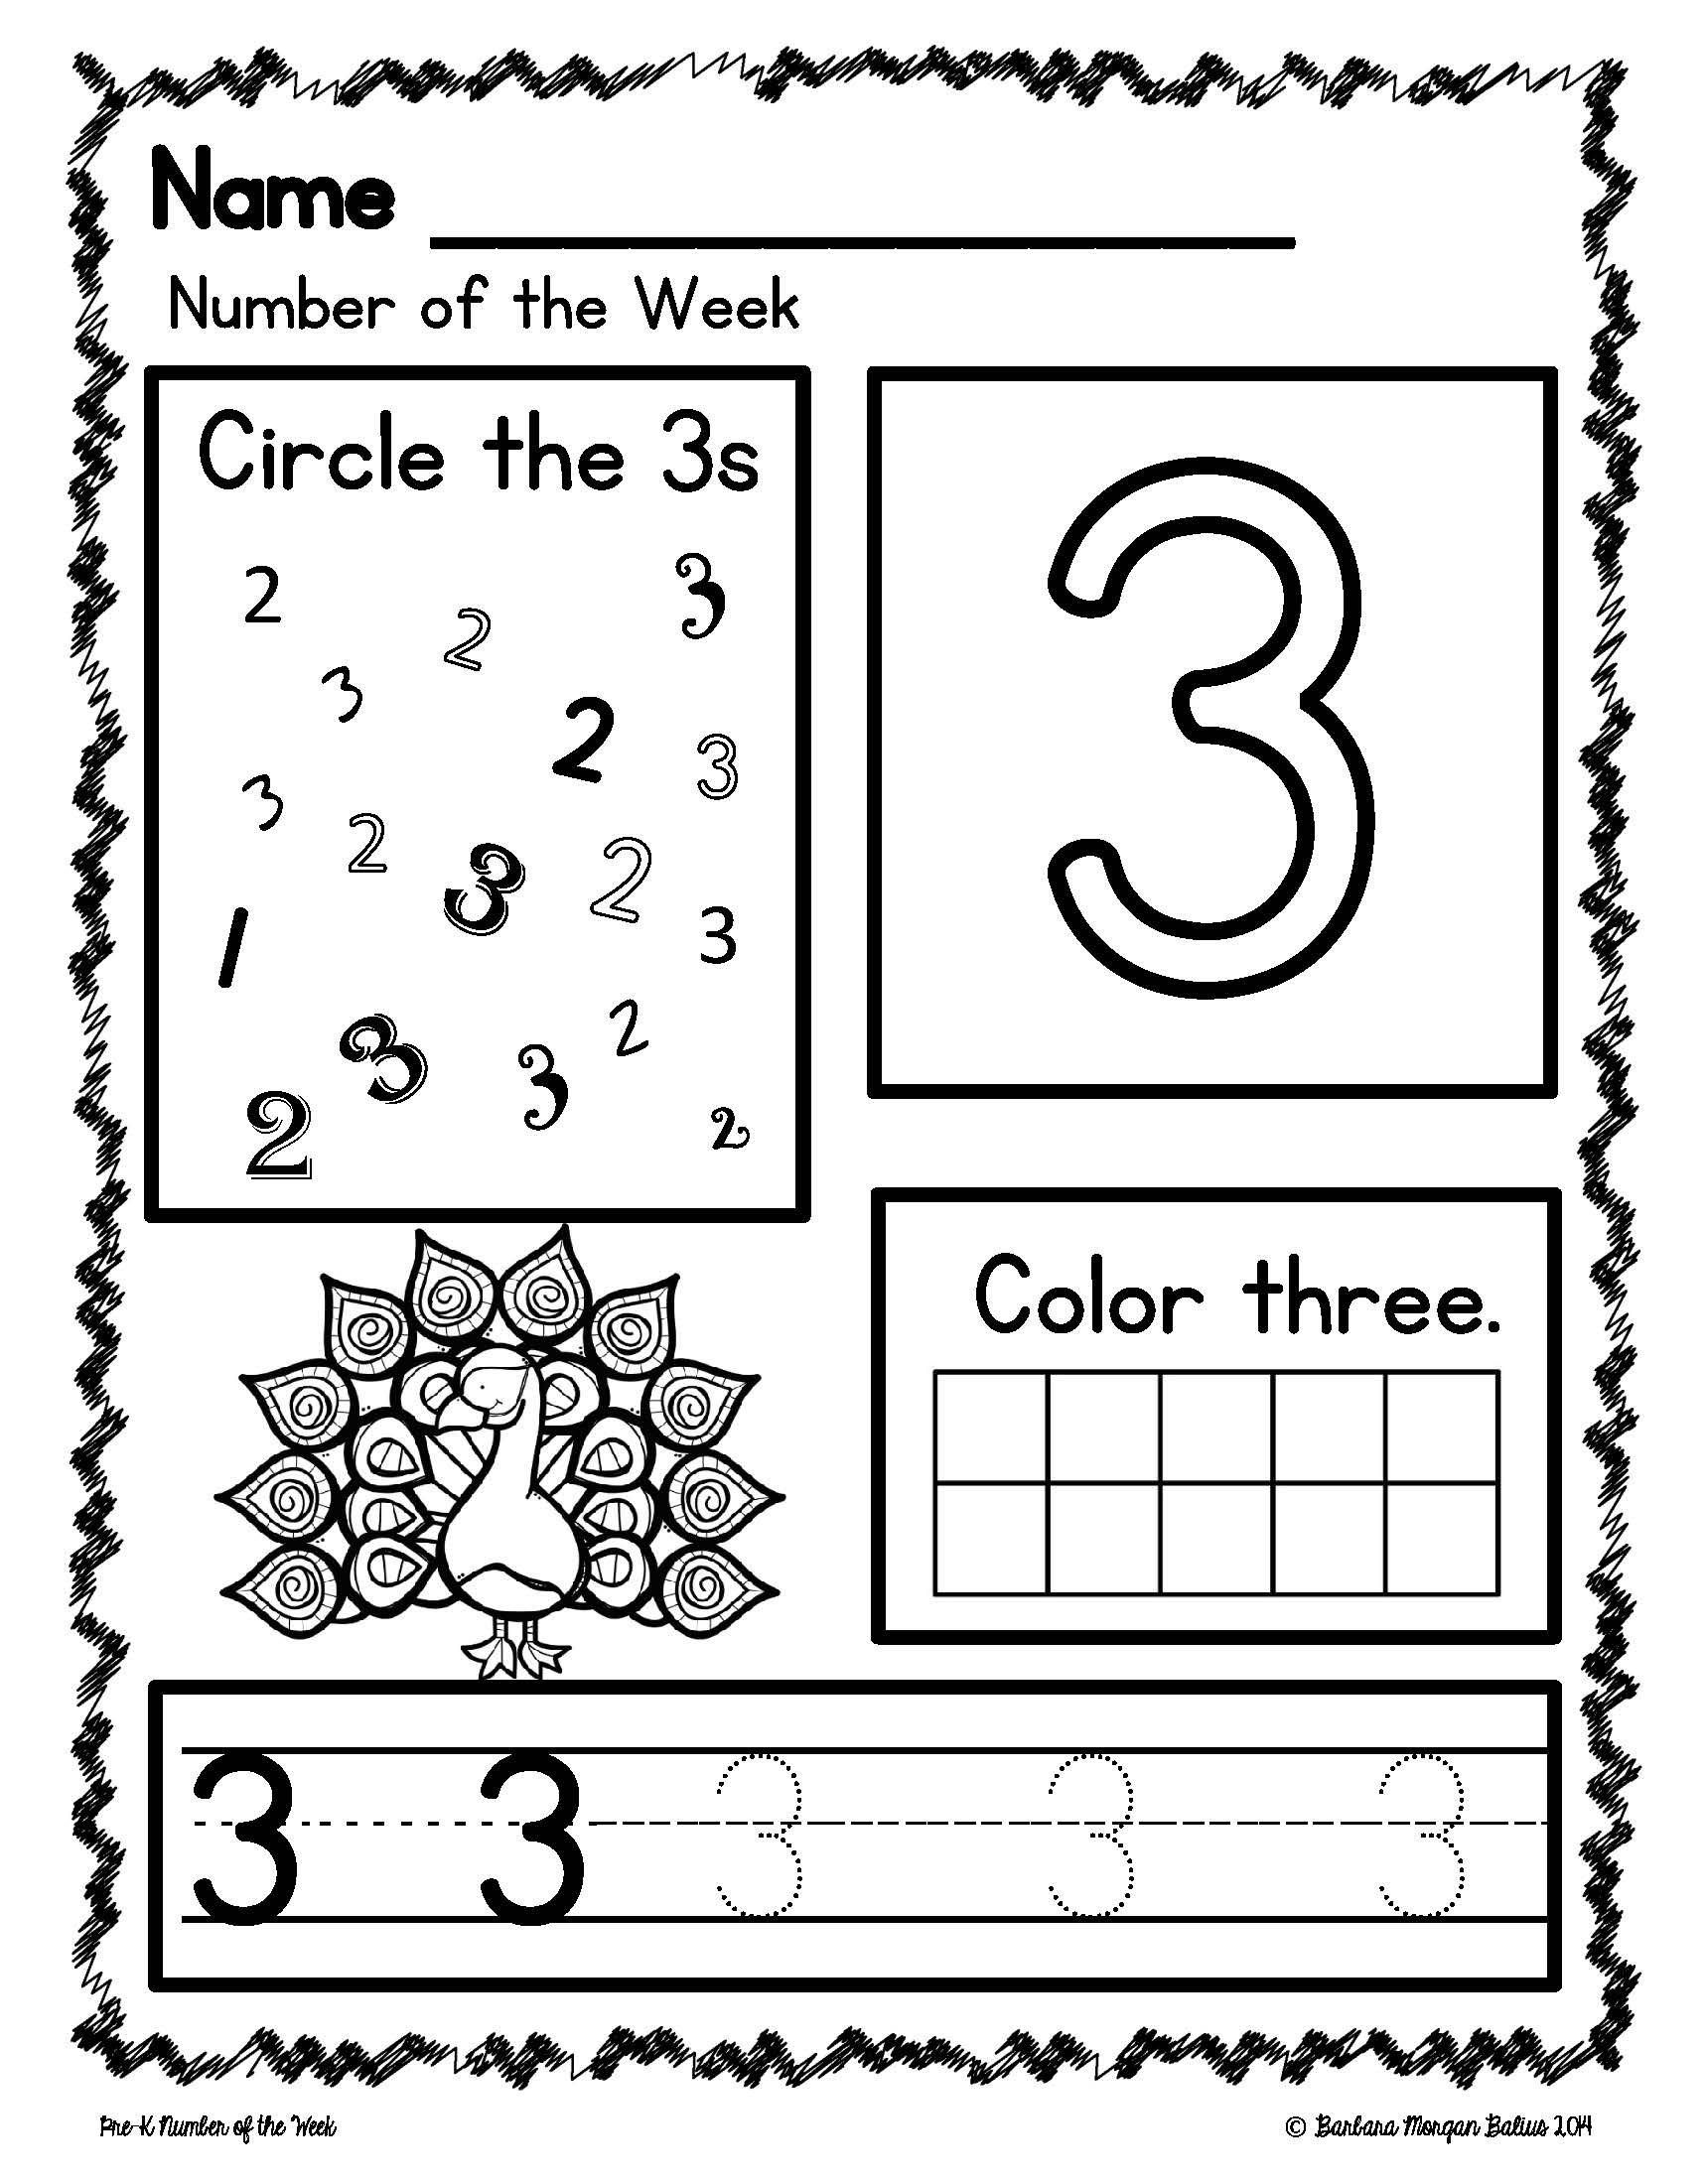 Worksheets Pre K Worksheets Numbers pre kindergarten math numbers 1 5 number of the week zoo theme k week